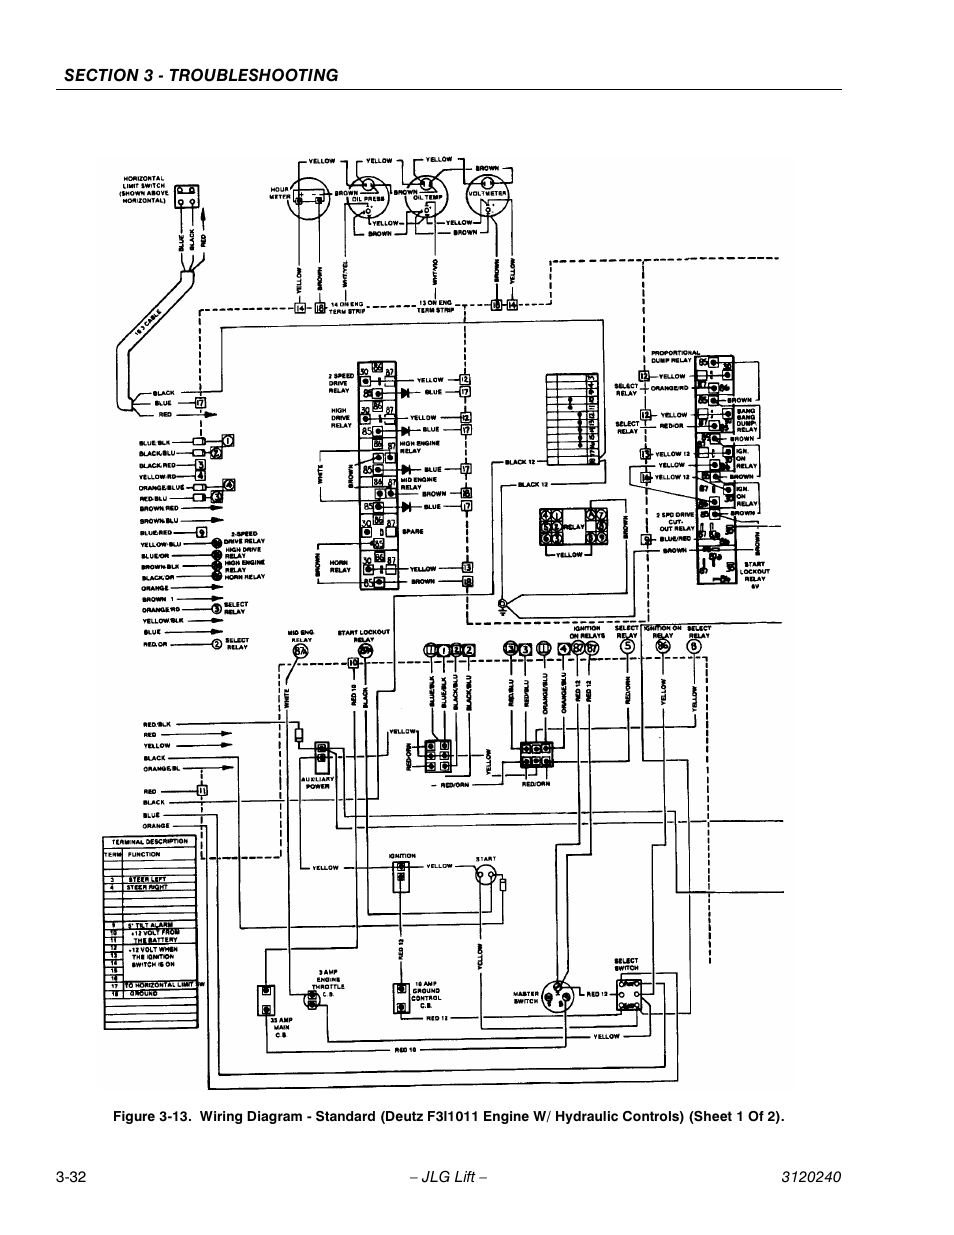 service wiring diagram jlg 40h wiring diagram wiring diagrams show service entrance panel wiring diagram jlg 40h wiring diagram wiring